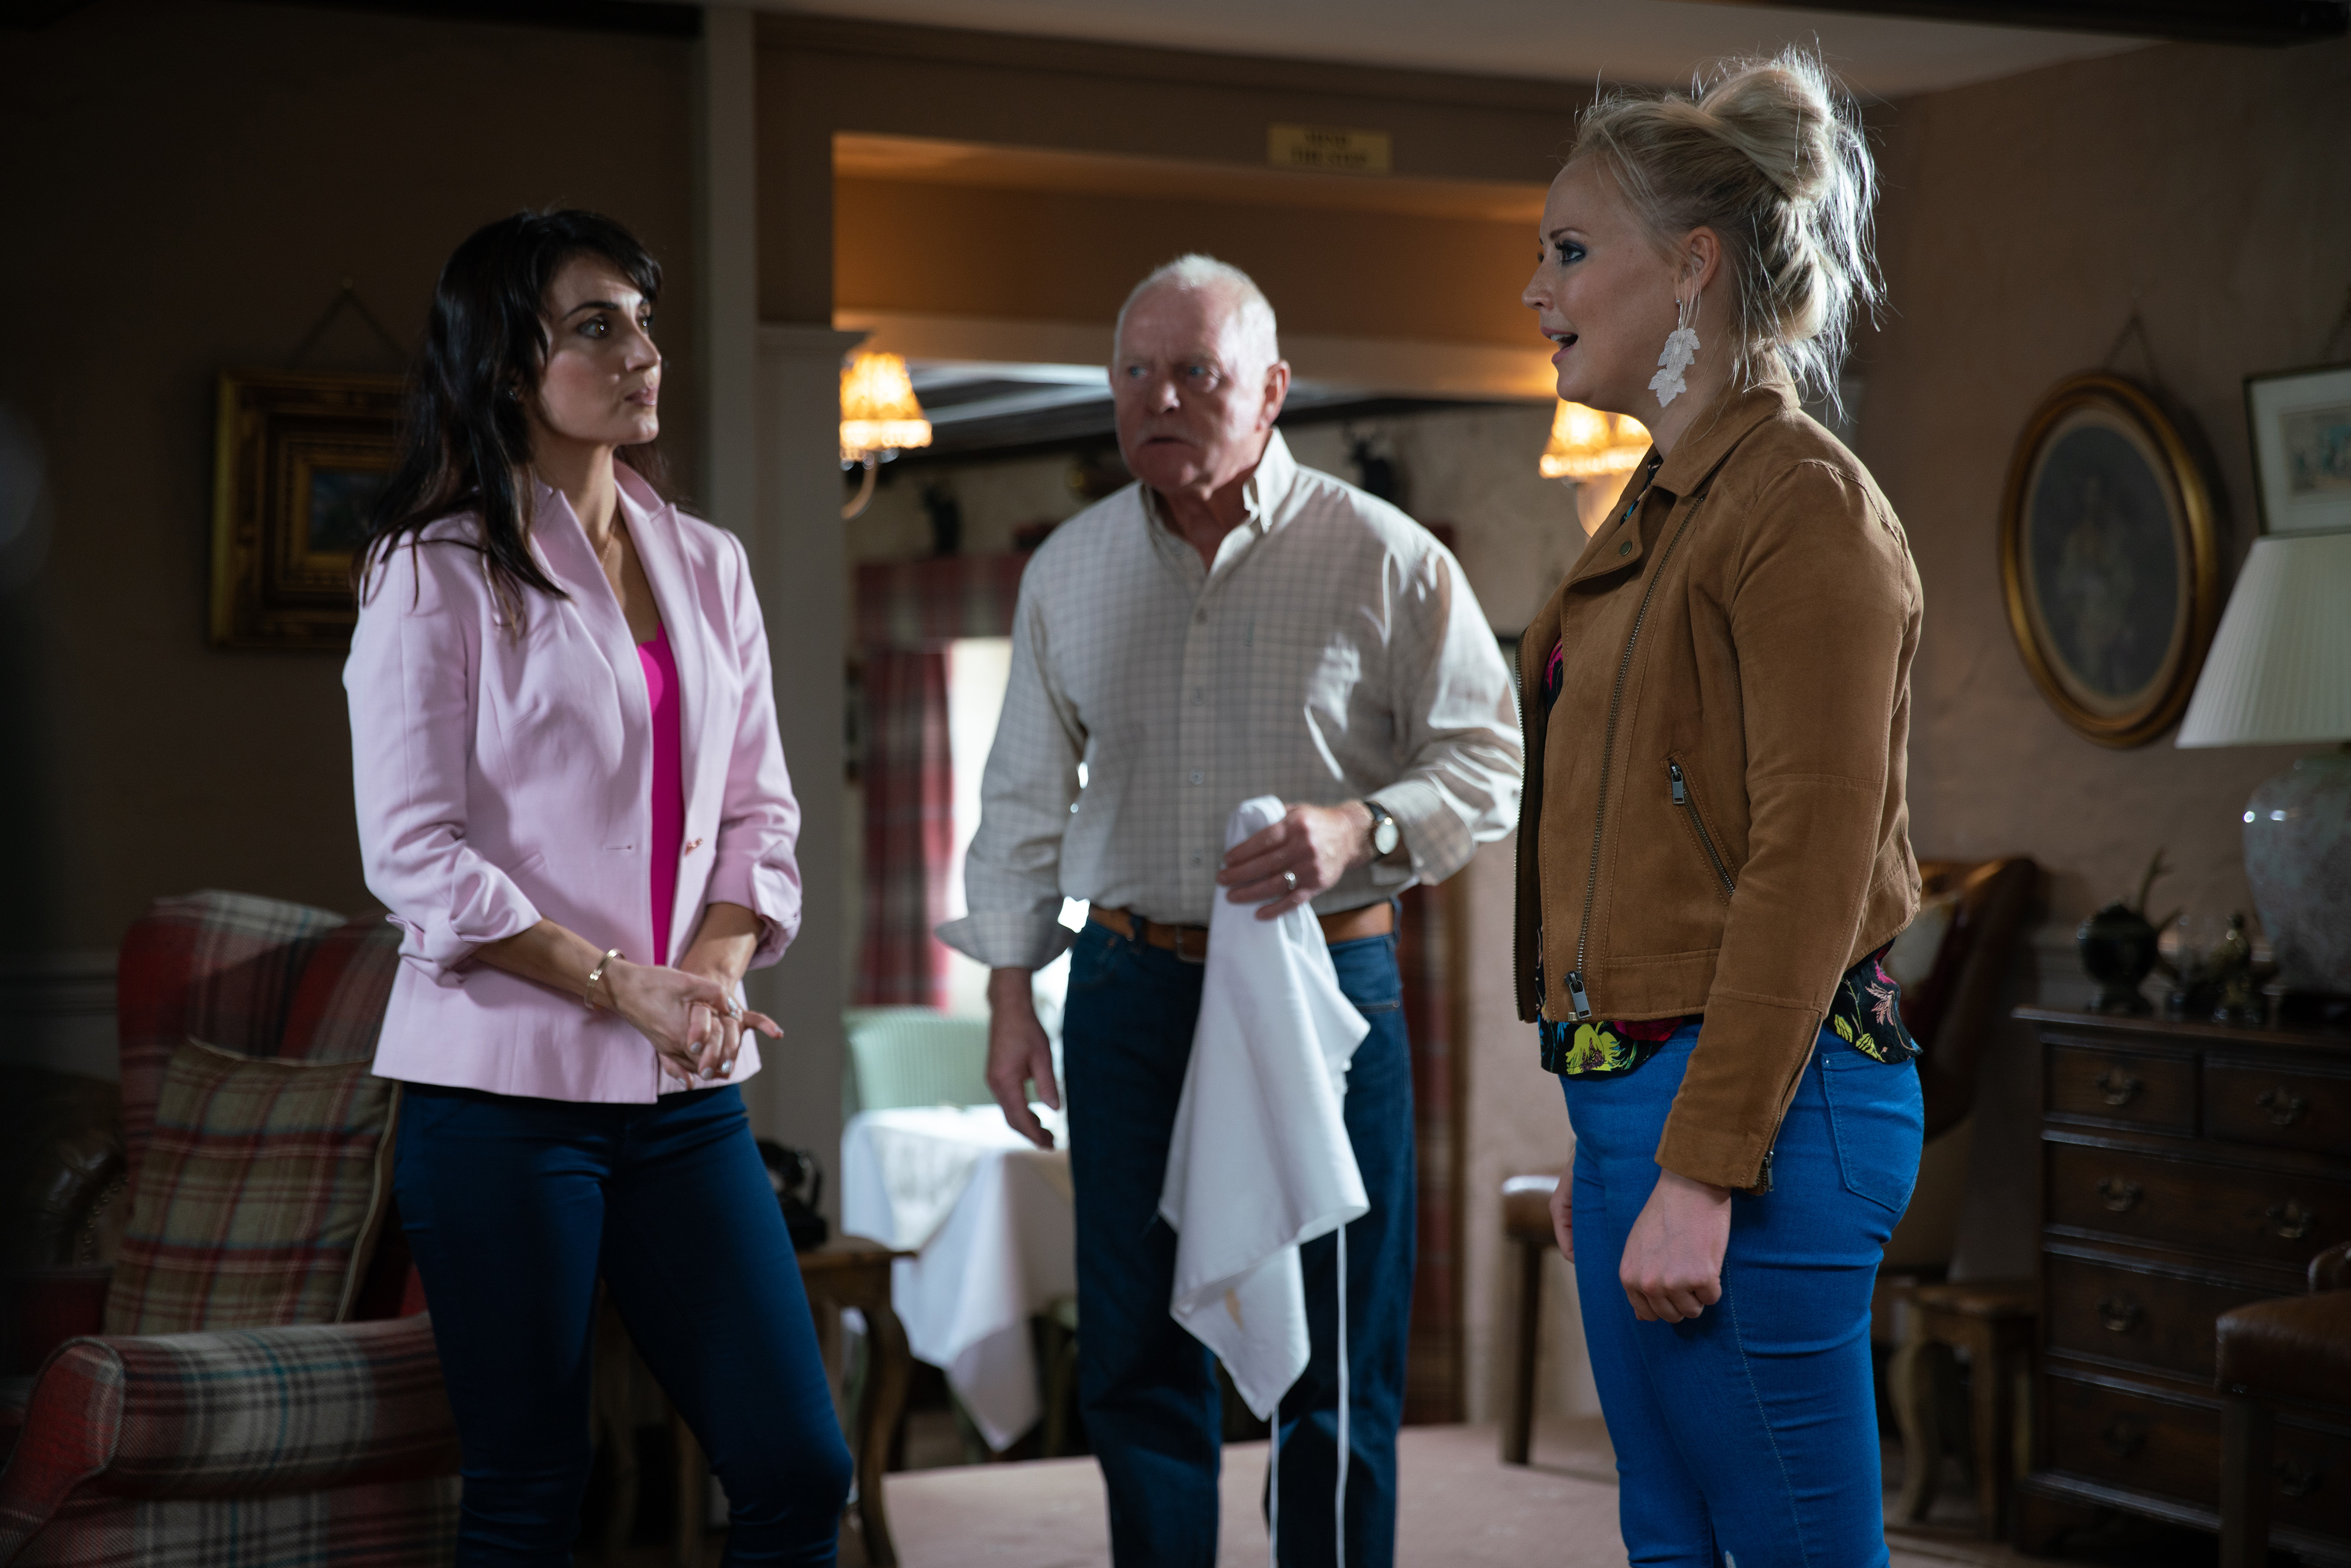 Emmerdale spoilers: Leyla Harding returns and straight into a fight with Tracy Shankley